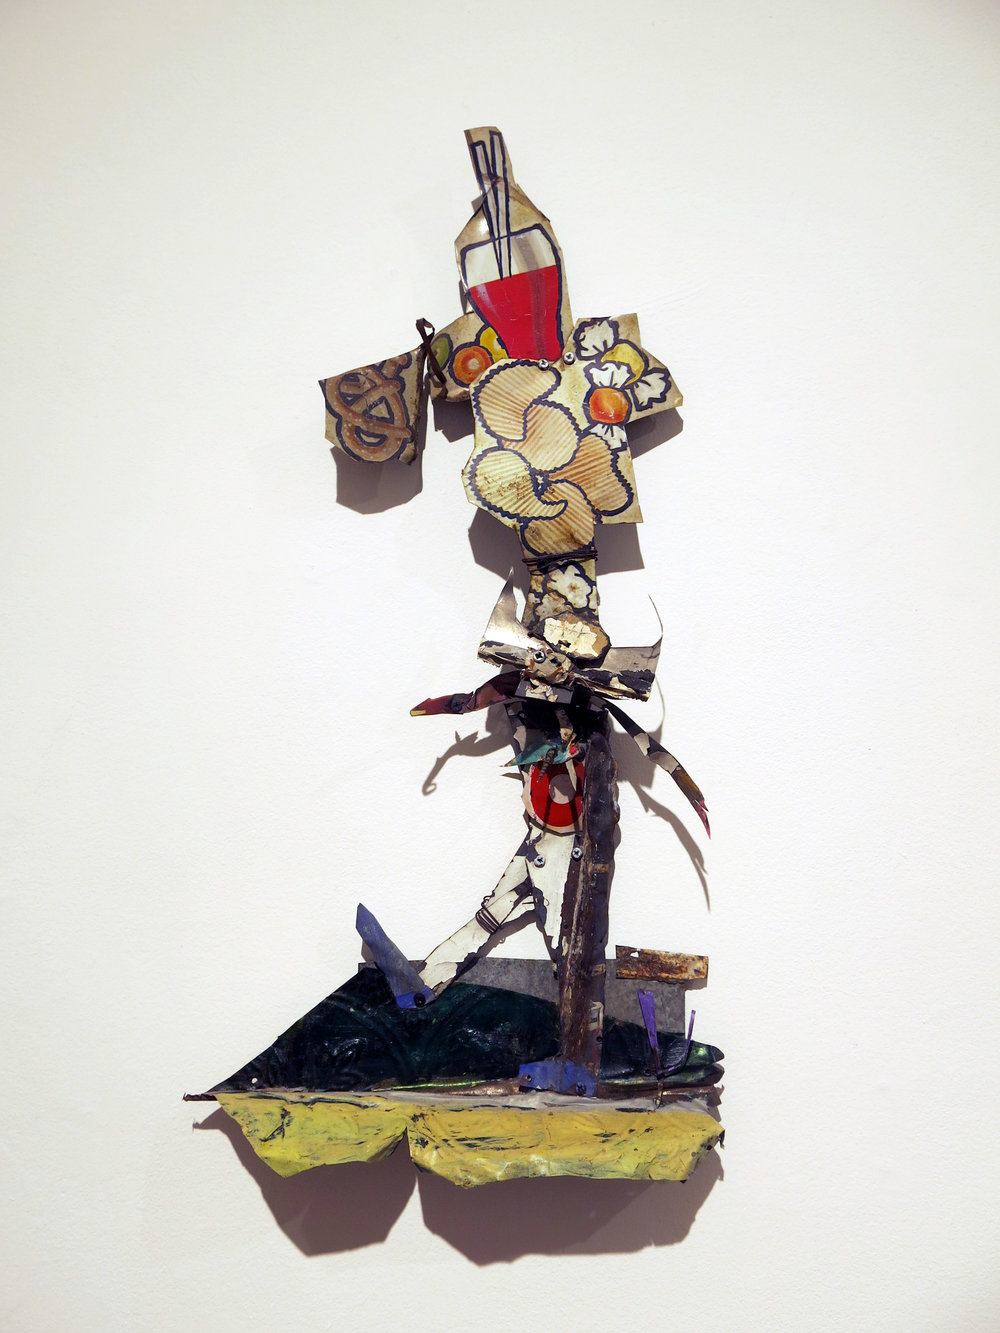 Matt Blackwell,  Buffalo Boy,  2014, sheet metal, caulk, wire, screws, paint, 26h x 14w x 3d in.